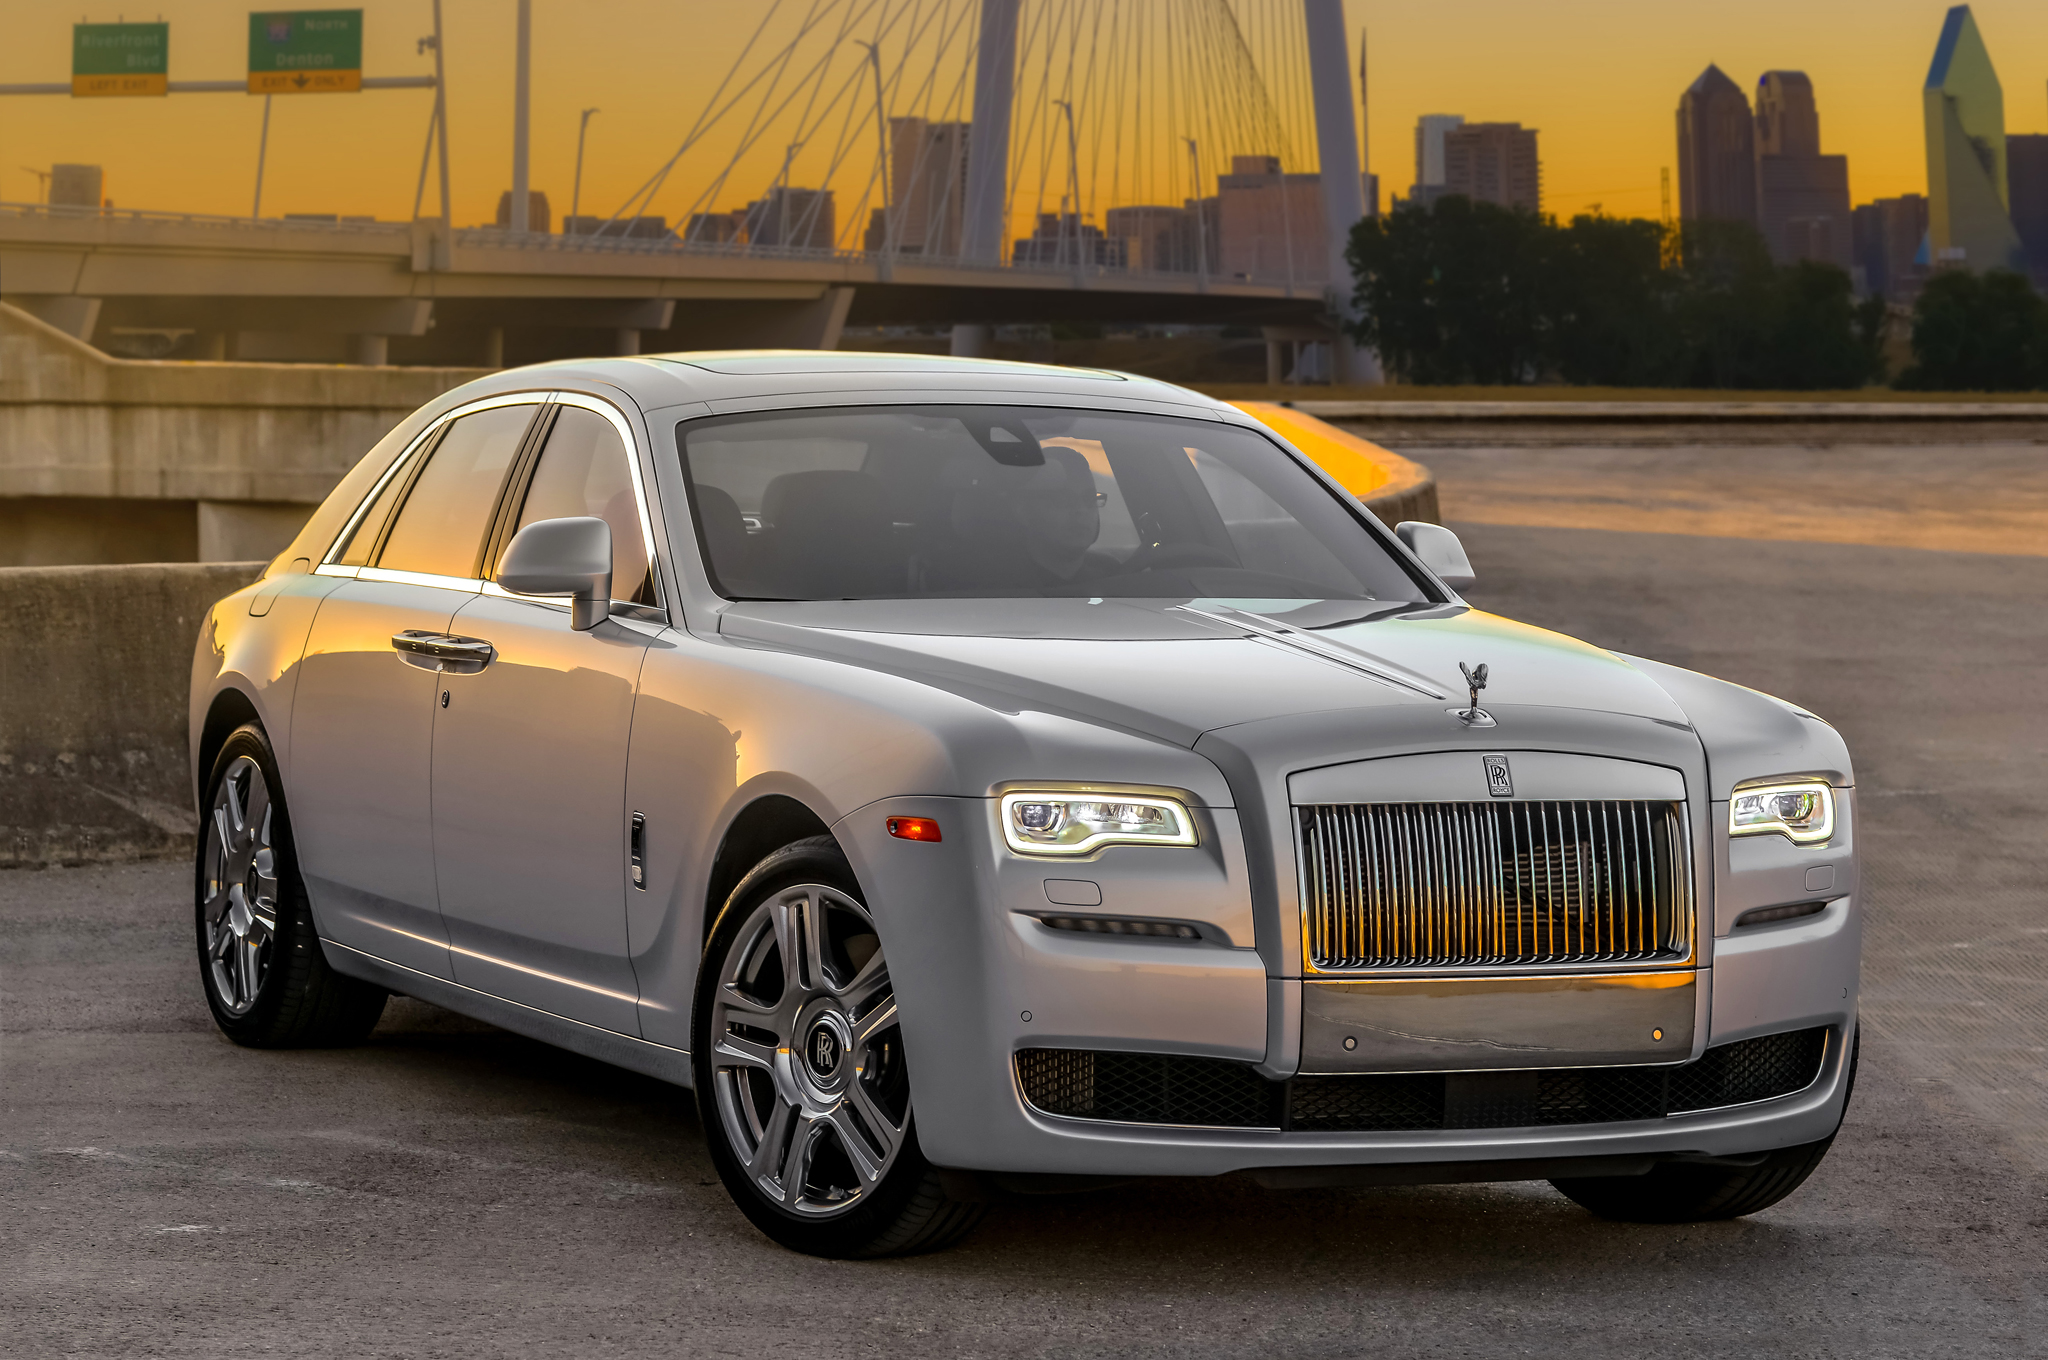 2016 rolls-royce ghost – pictures, information and specs - auto